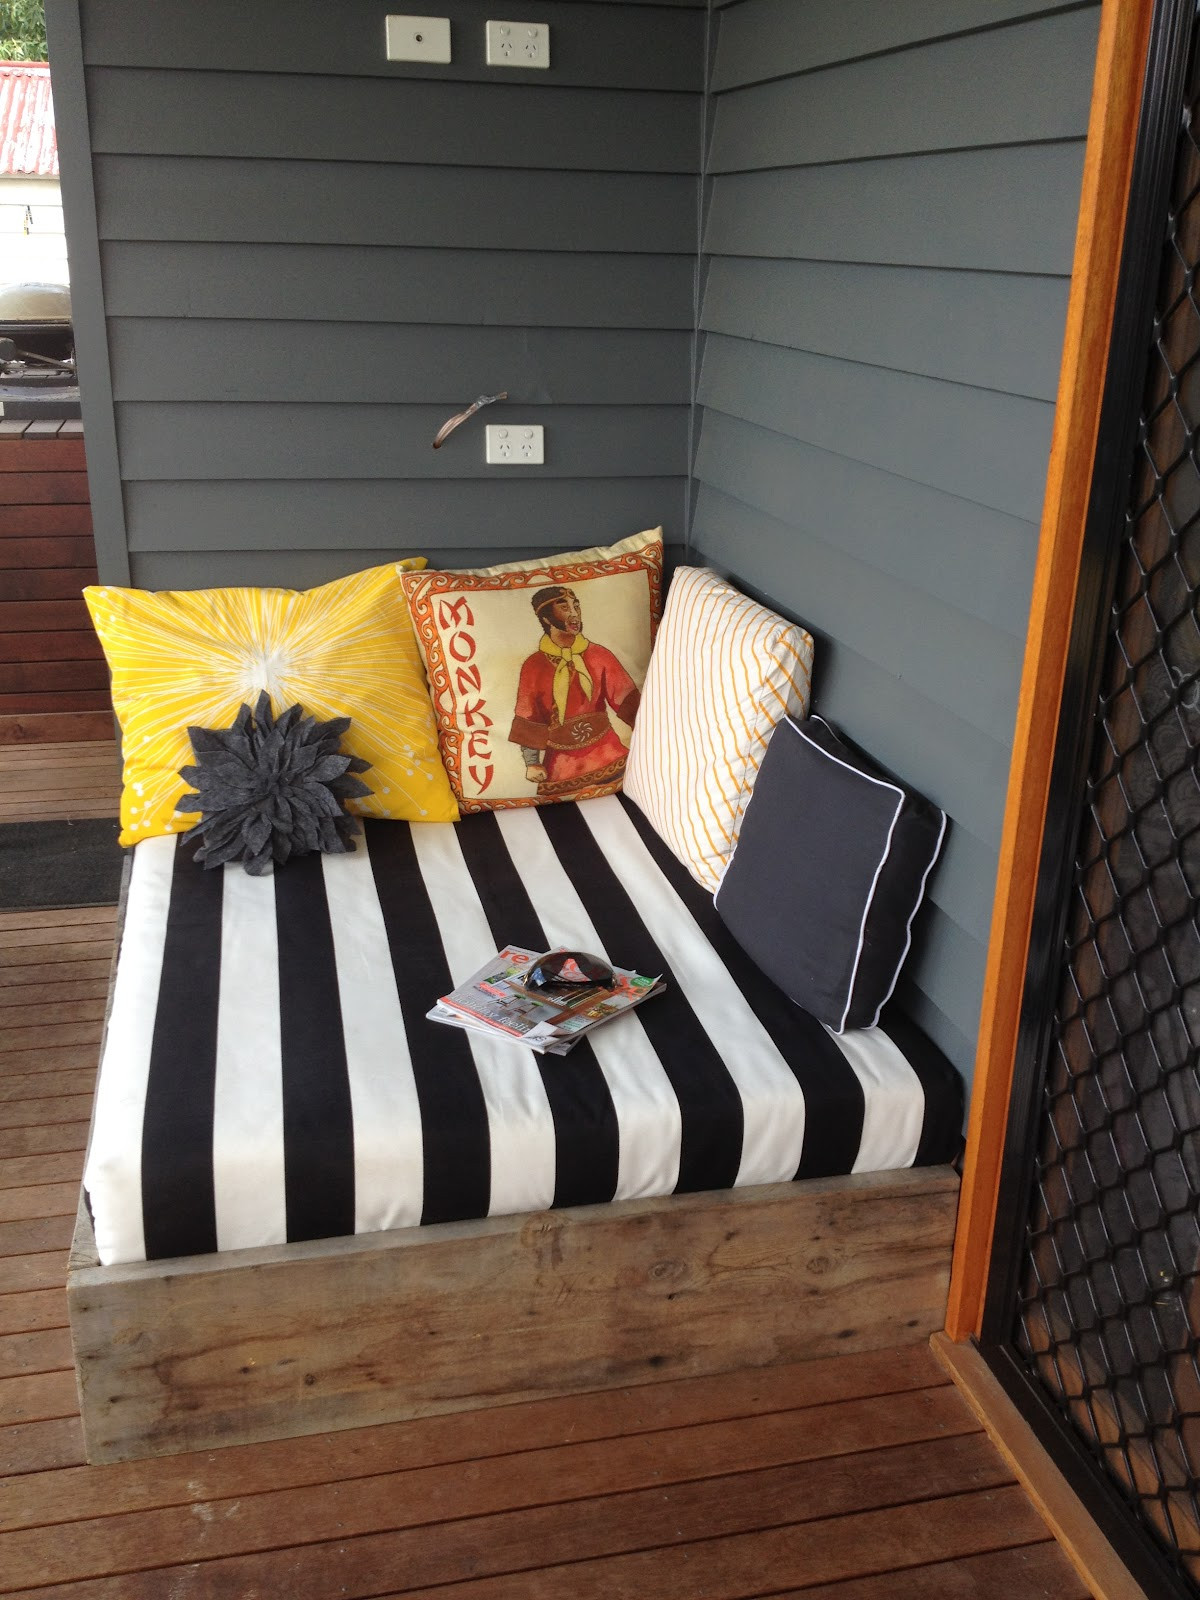 Best ideas about DIY Outdoor Bed . Save or Pin apprentice extrovert DIY Outdoor Day Bed Reveal Now.